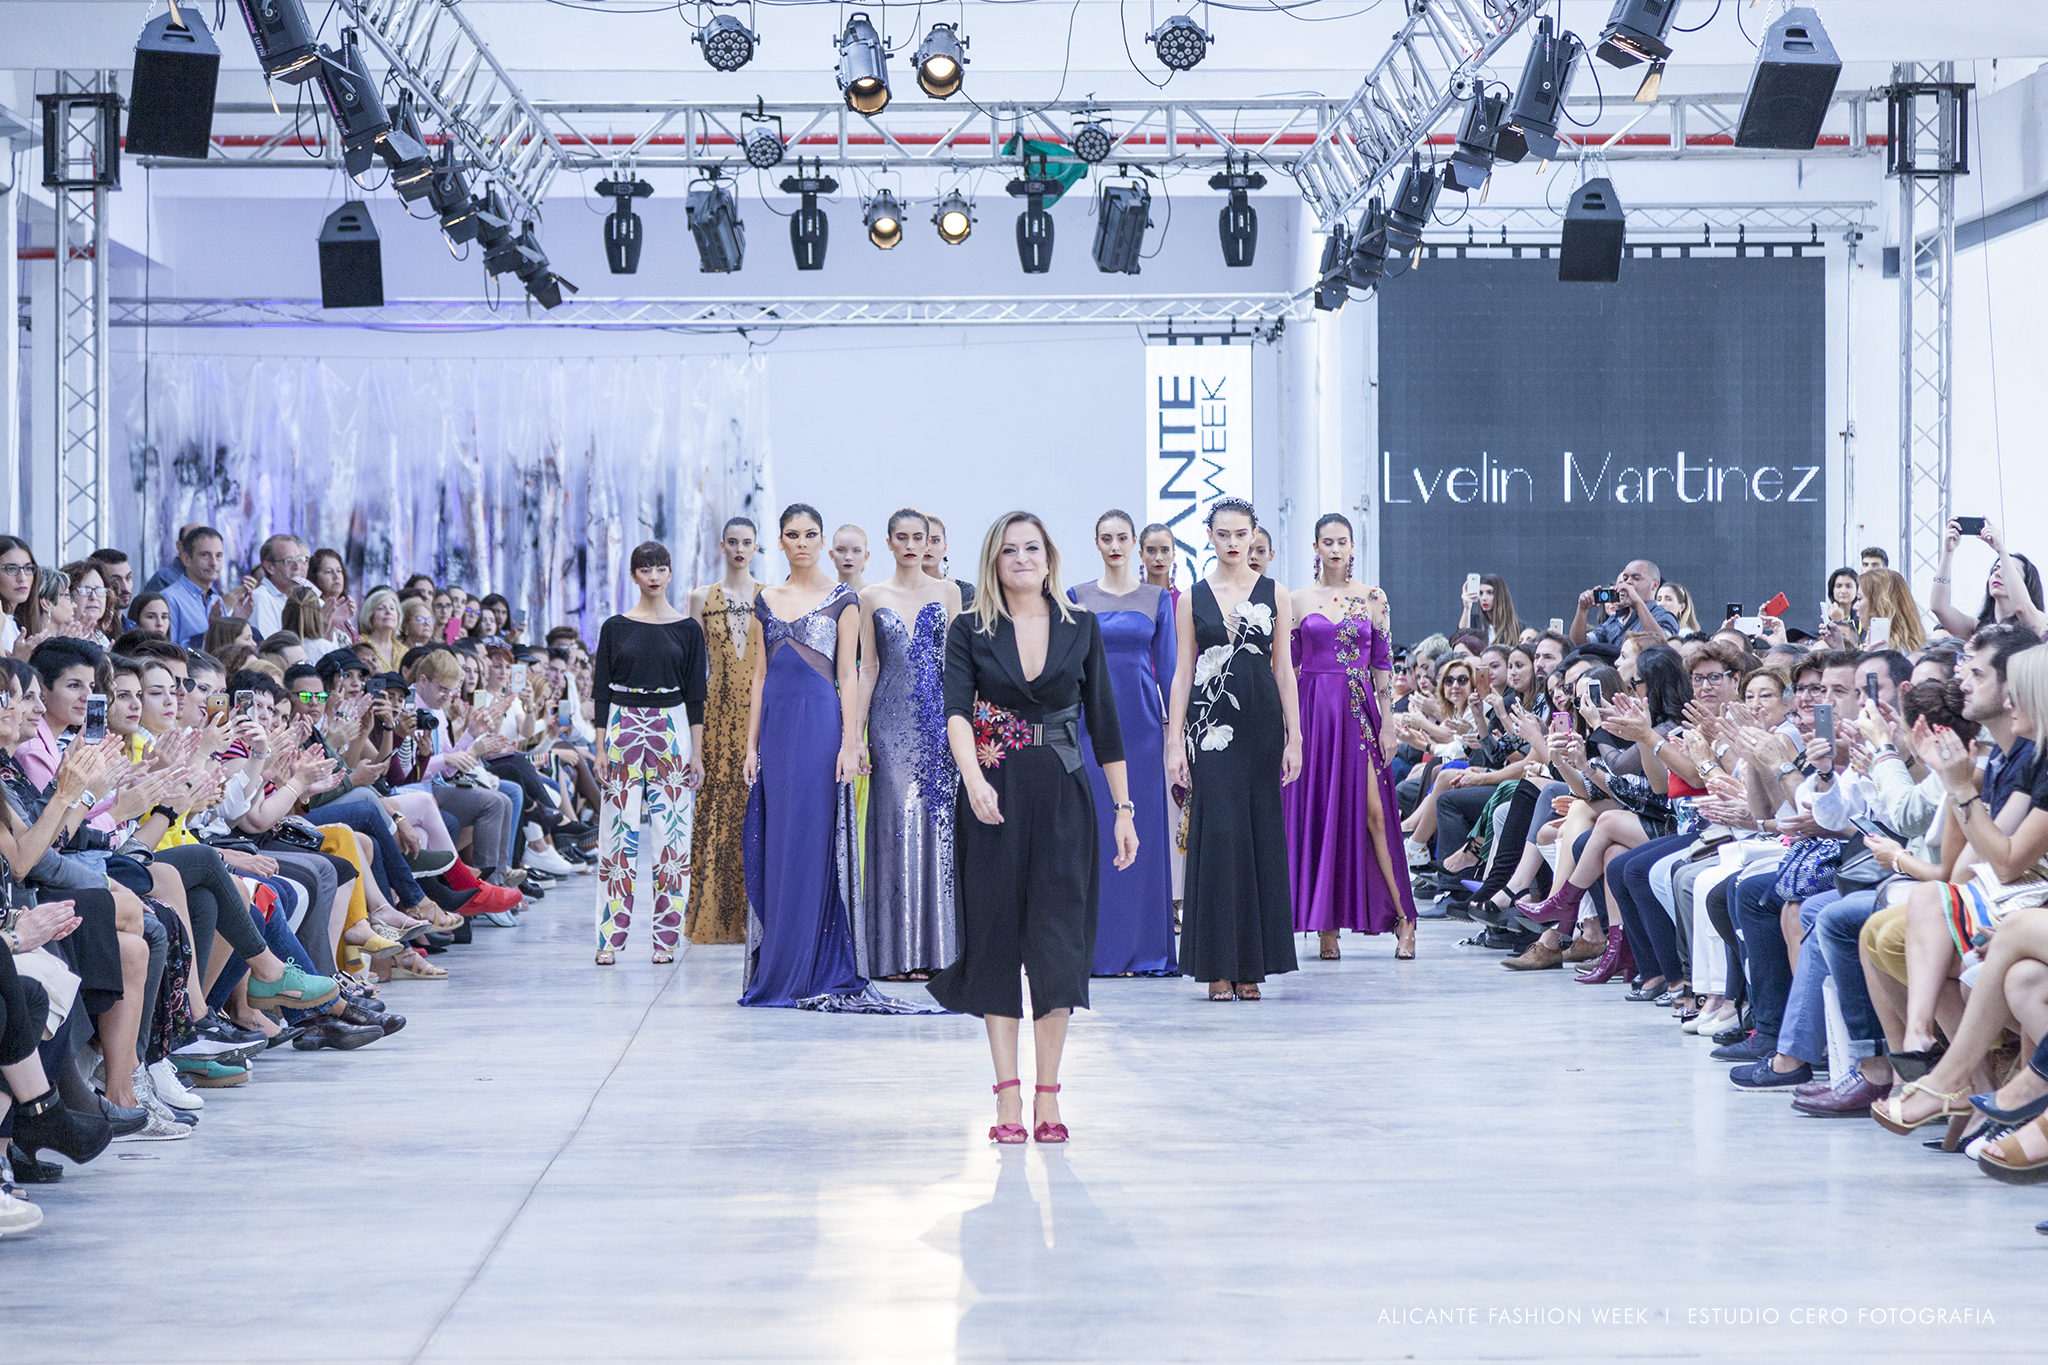 Evelin Martínez Alicante Fashion Week 2017